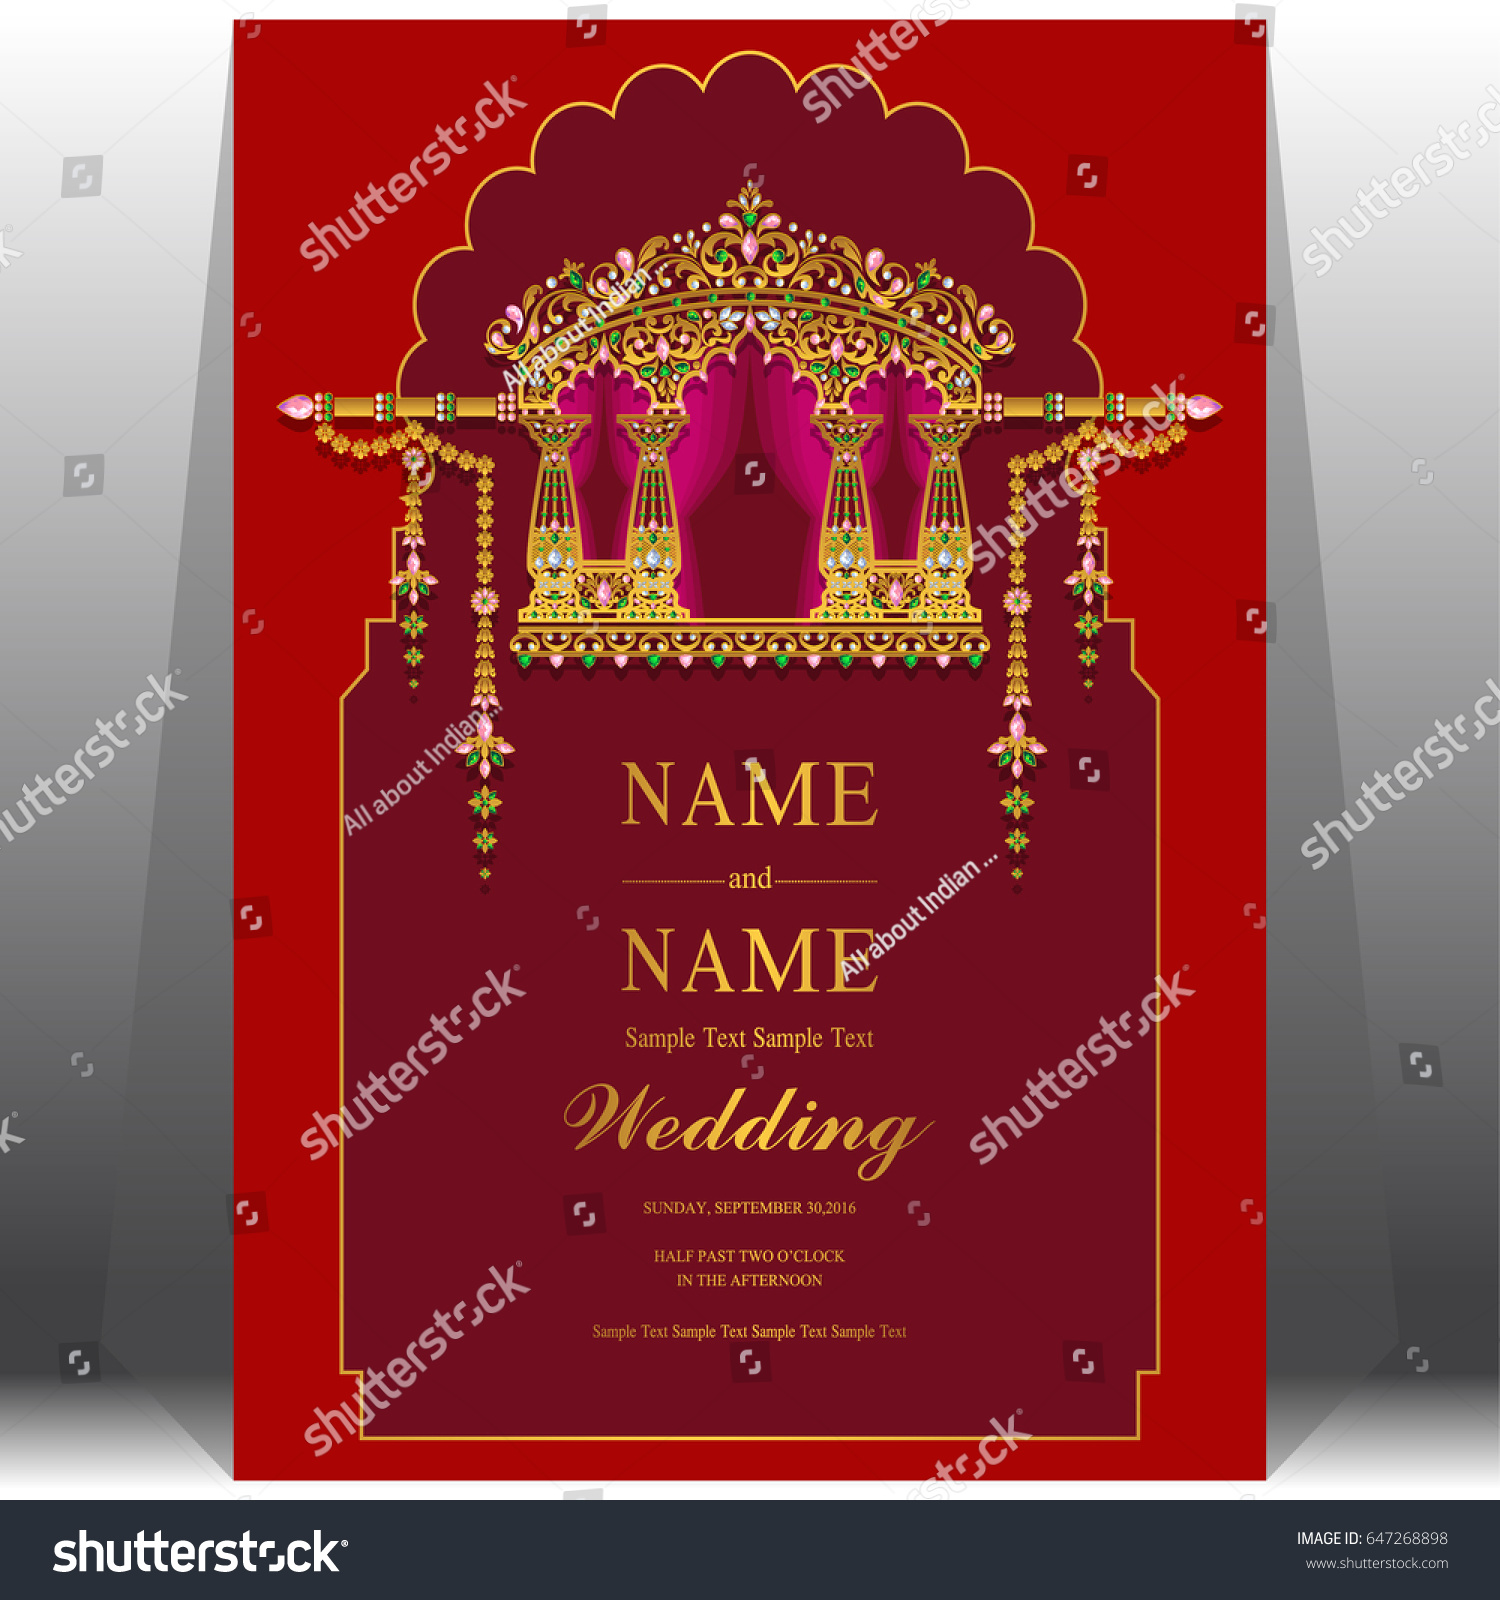 Wedding Invitation Card Templates Gold Indian Stock Vector (Royalty ...